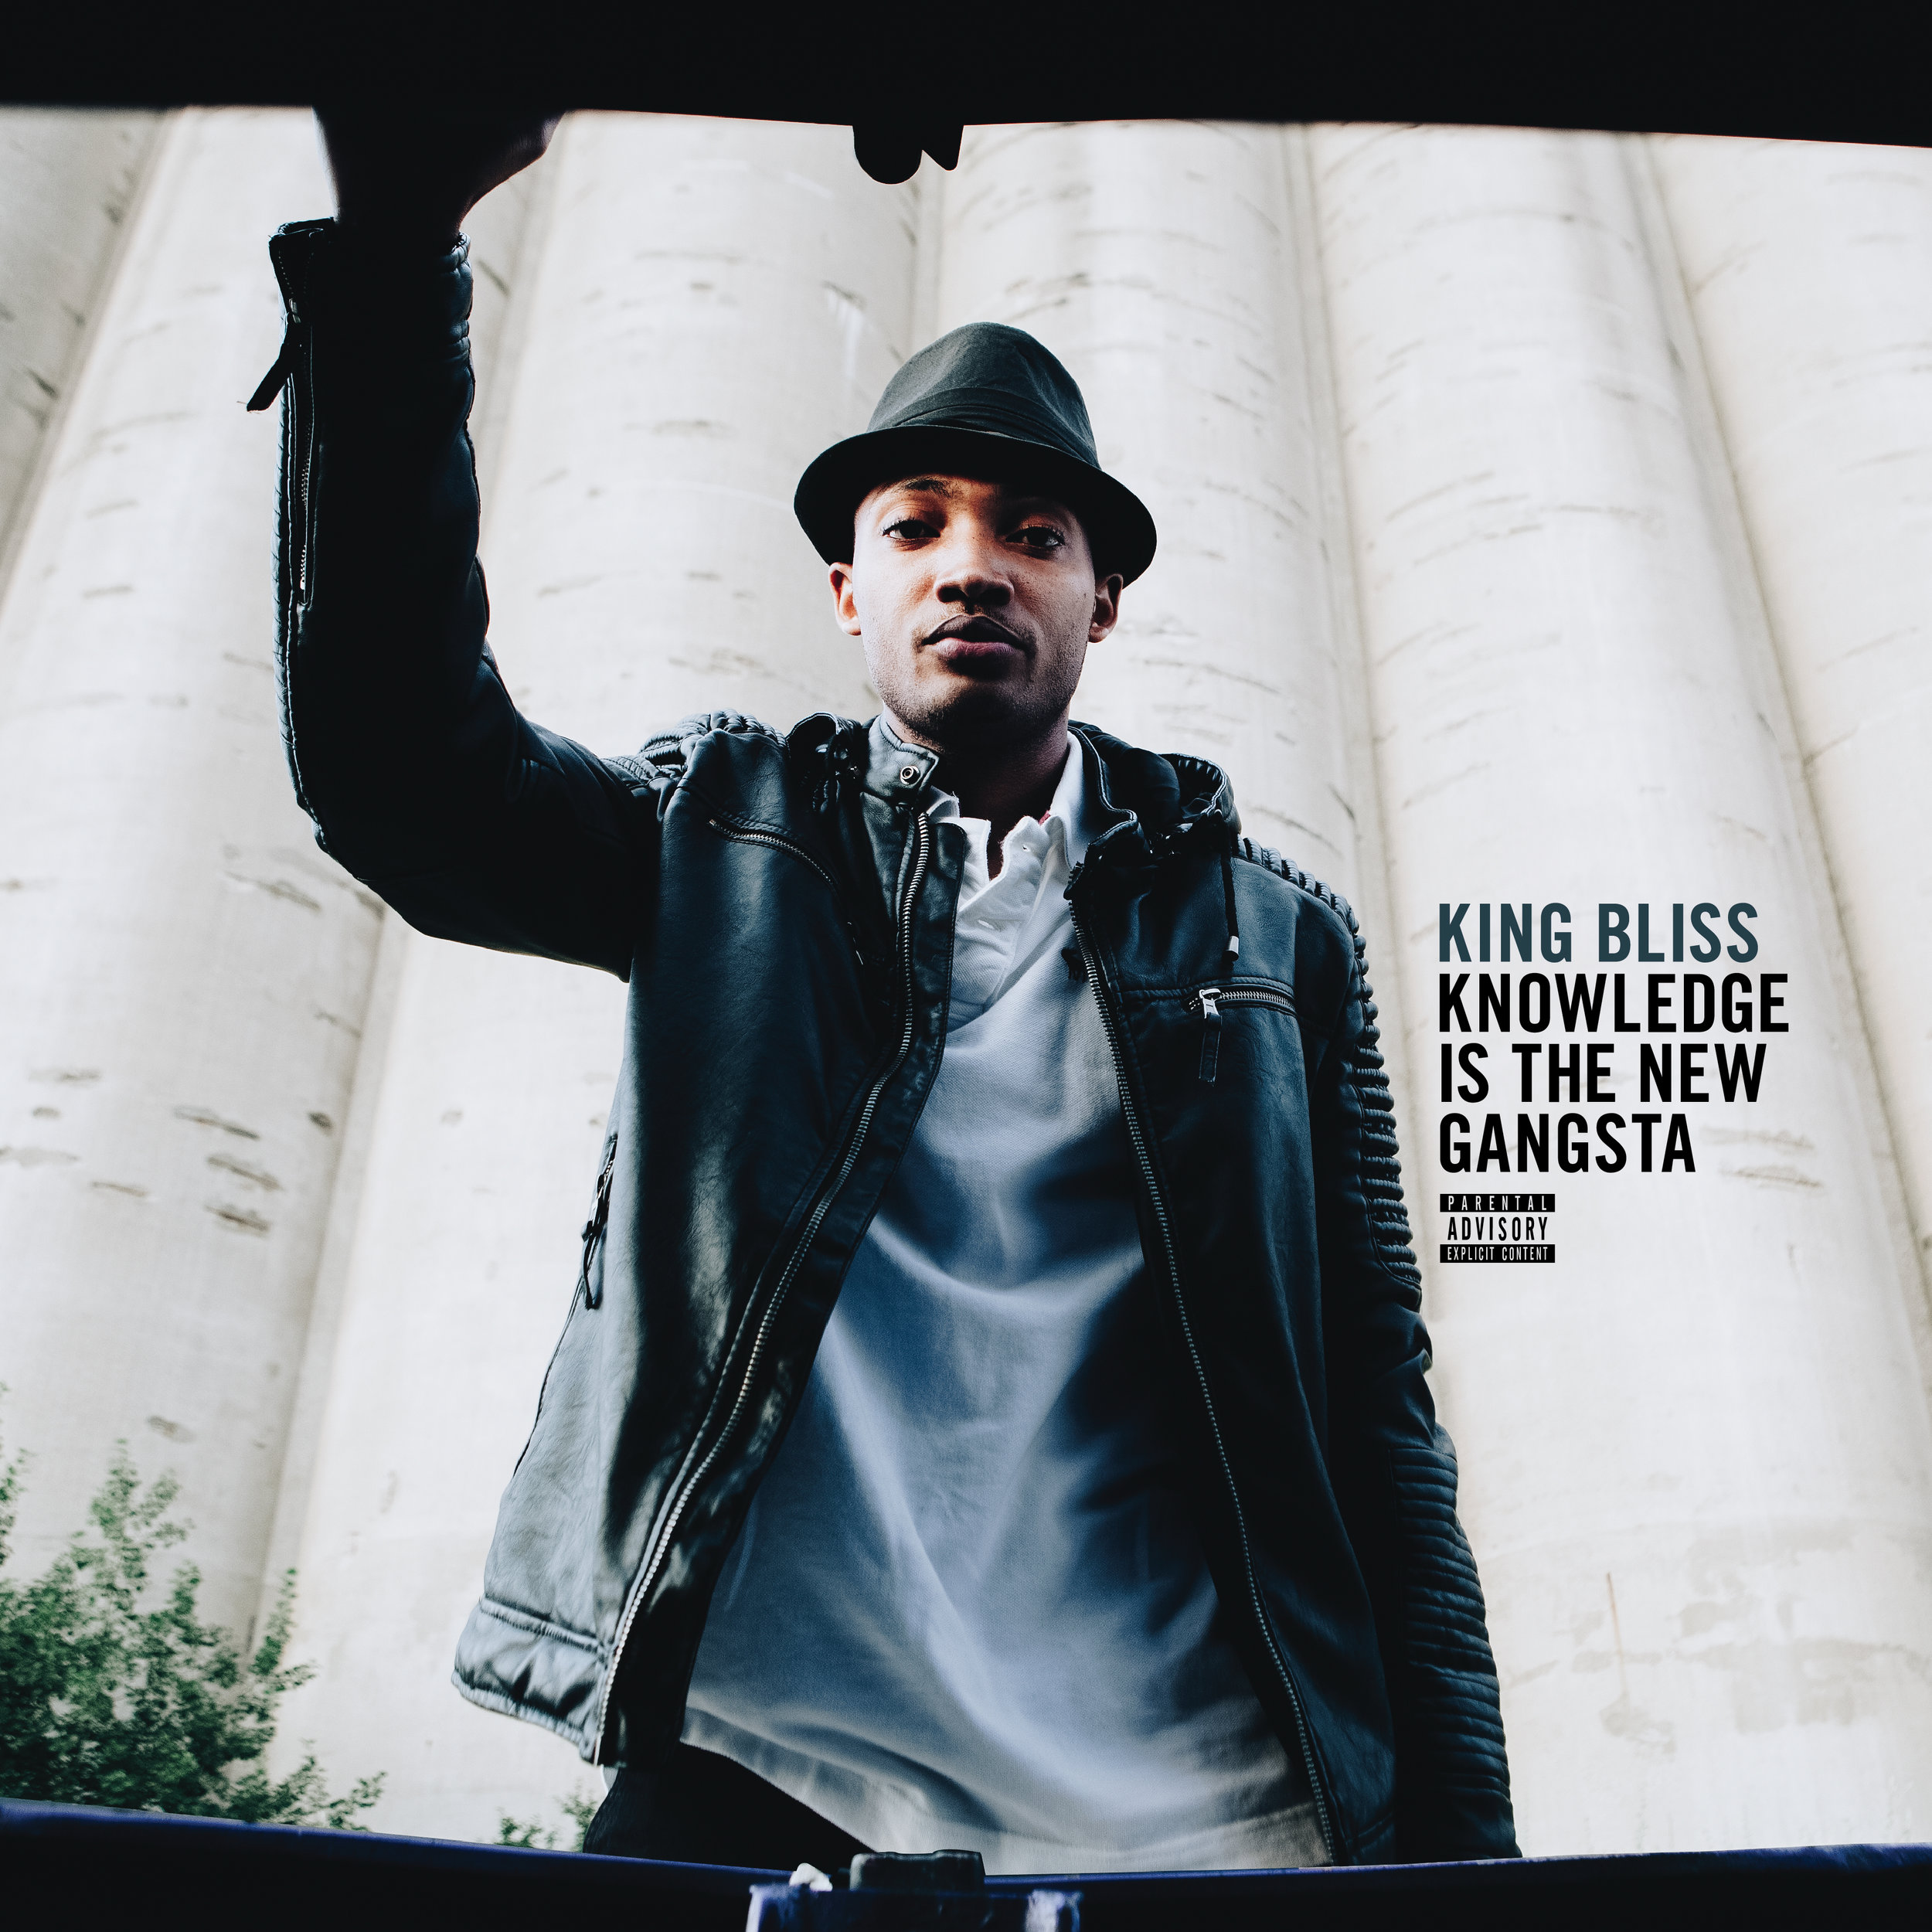 K.I.N.G. EP - King Bliss' EP Knowledge is the New Gangsta (K.I.N.G.) is now available in all digital media stores. Click HERE for the full album.